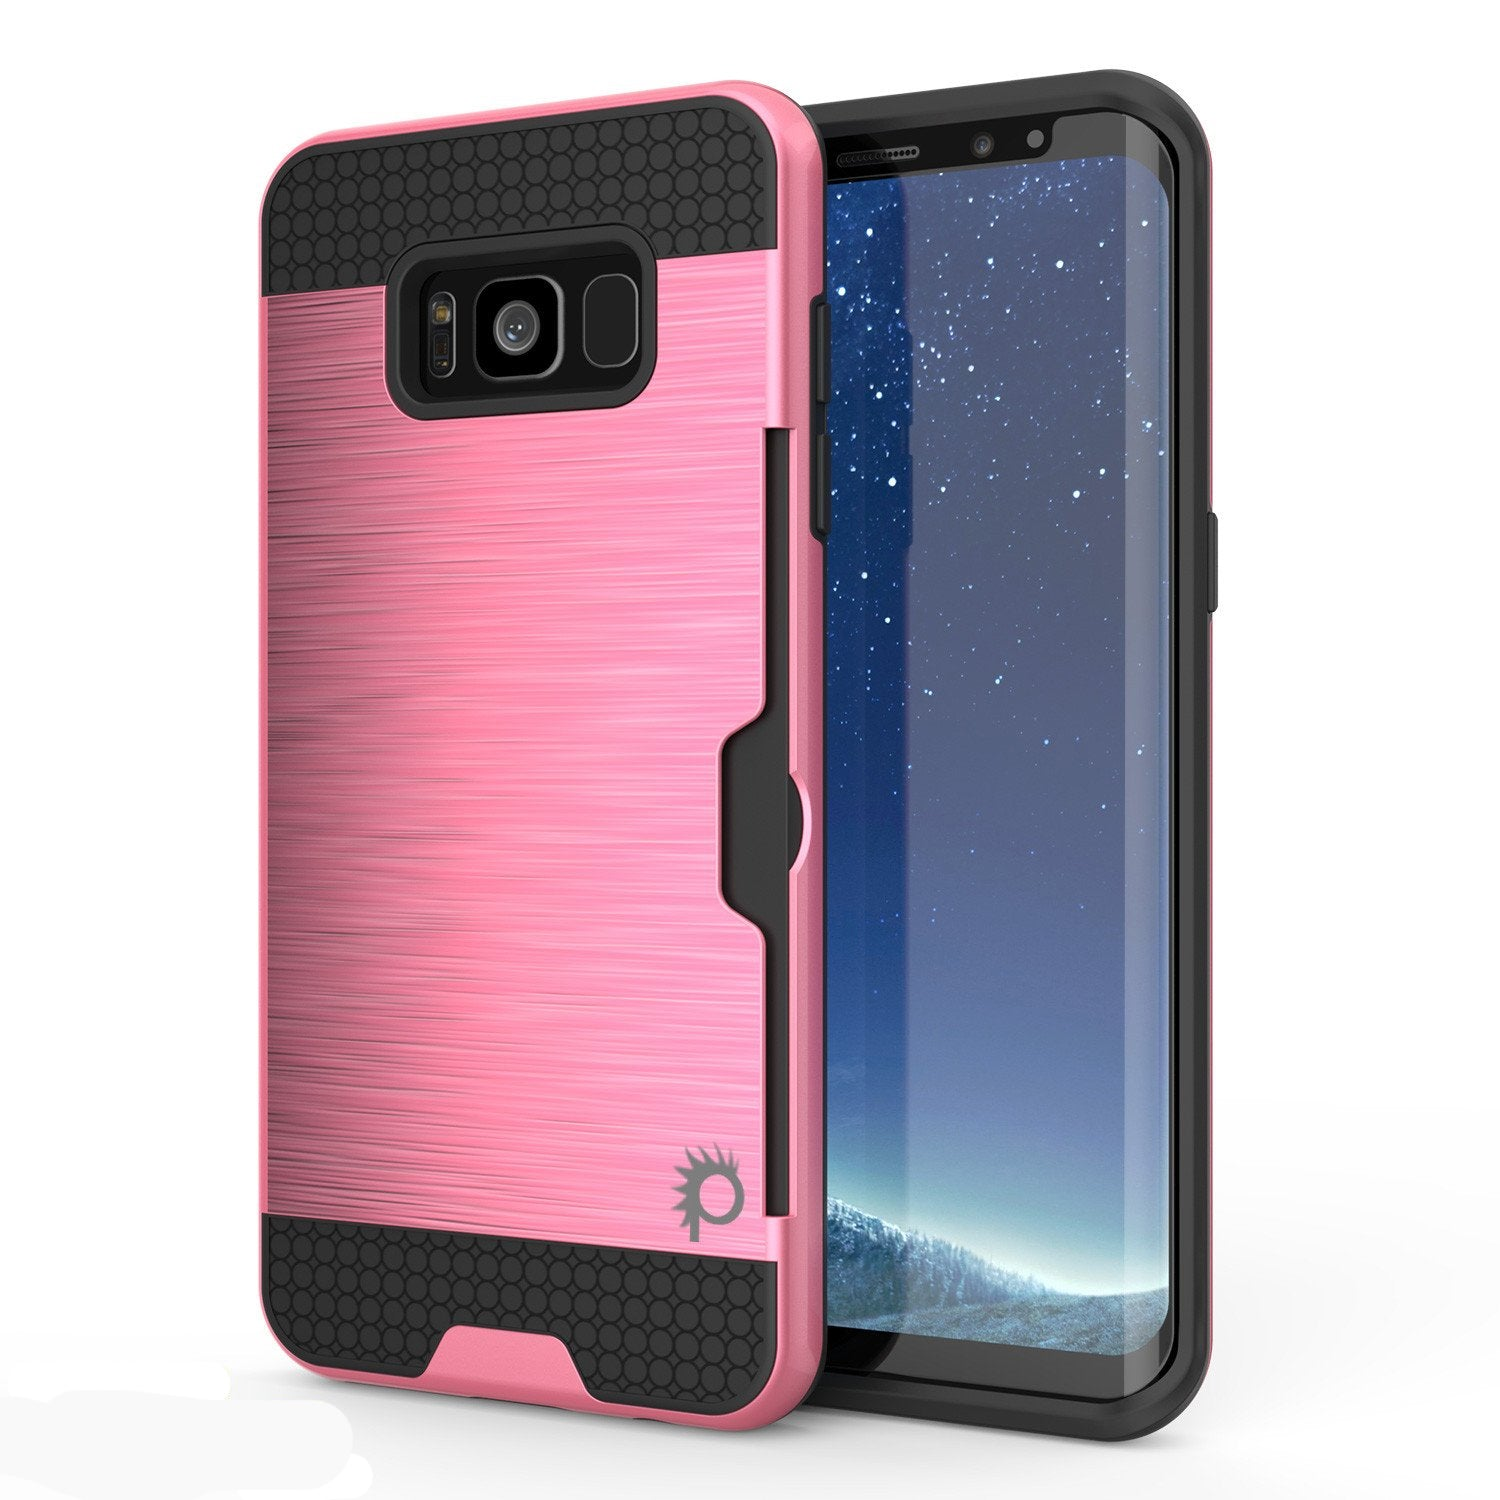 Galaxy S8 Case, PUNKcase [SLOT Series] [Slim Fit] Dual-Layer Armor Cover w/Integrated Anti-Shock System, Credit Card Slot [Pink]